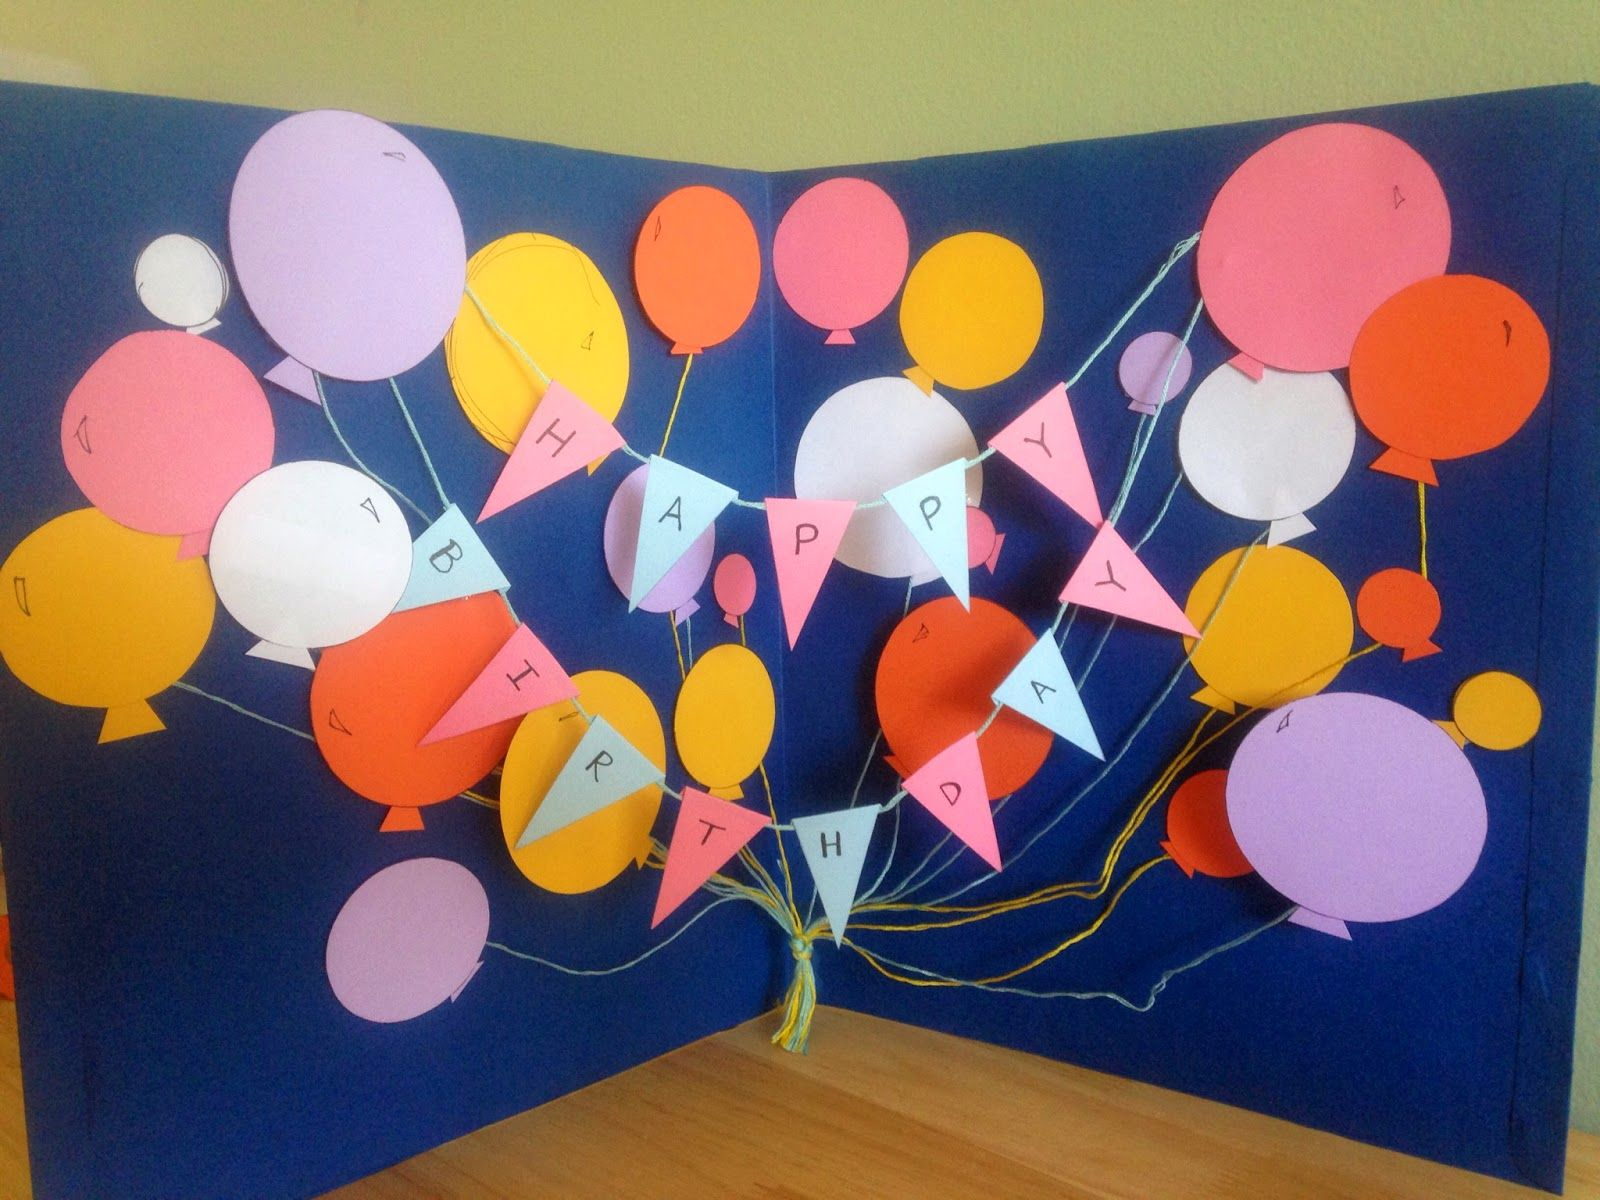 DIY Giant Happy Birthday Card Thats Cheaper Than Anything Youll Find In A Store